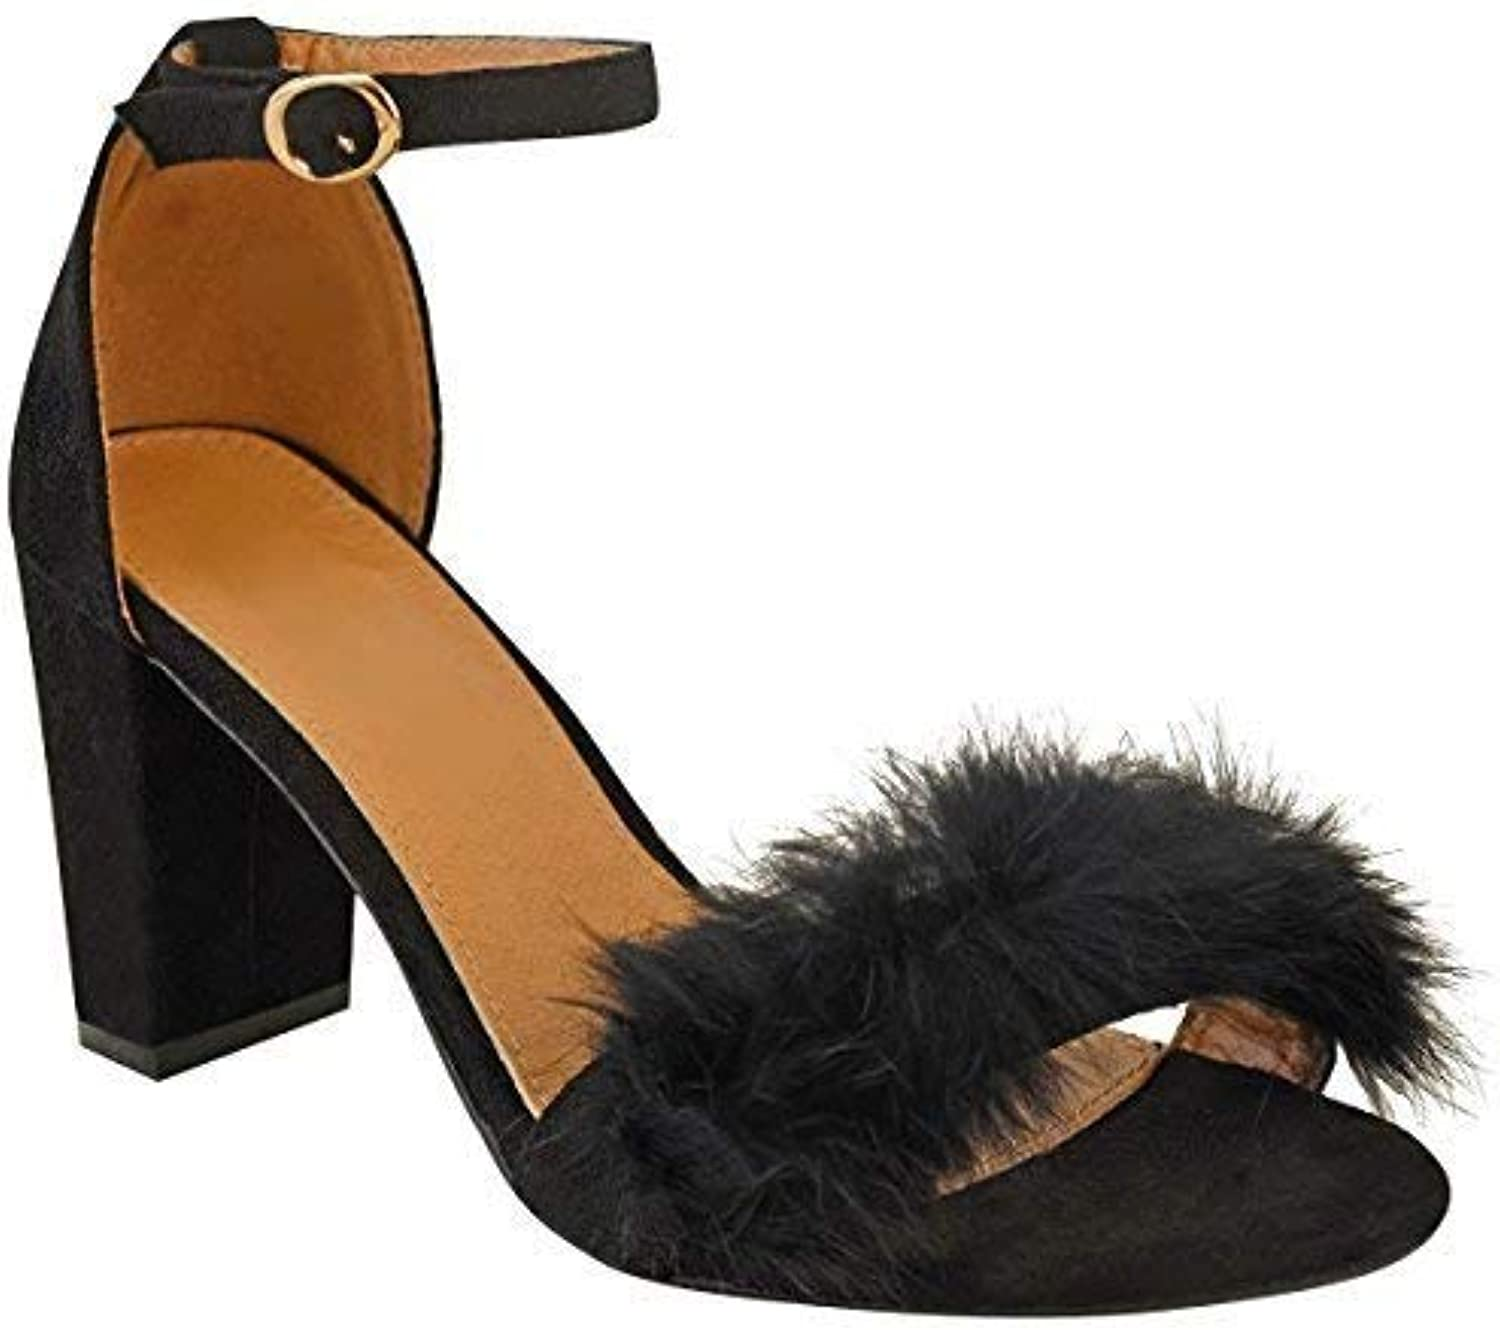 853ee864bab5 ... Thirsty 17706 Womens Ladies Faux Fur Fluffy Low Ladies Wedge nhta-17706 Heel  Sandals Strappy Party Shoes Size UK B07CJMLQM5 Parent f1f3883. Search. Menu